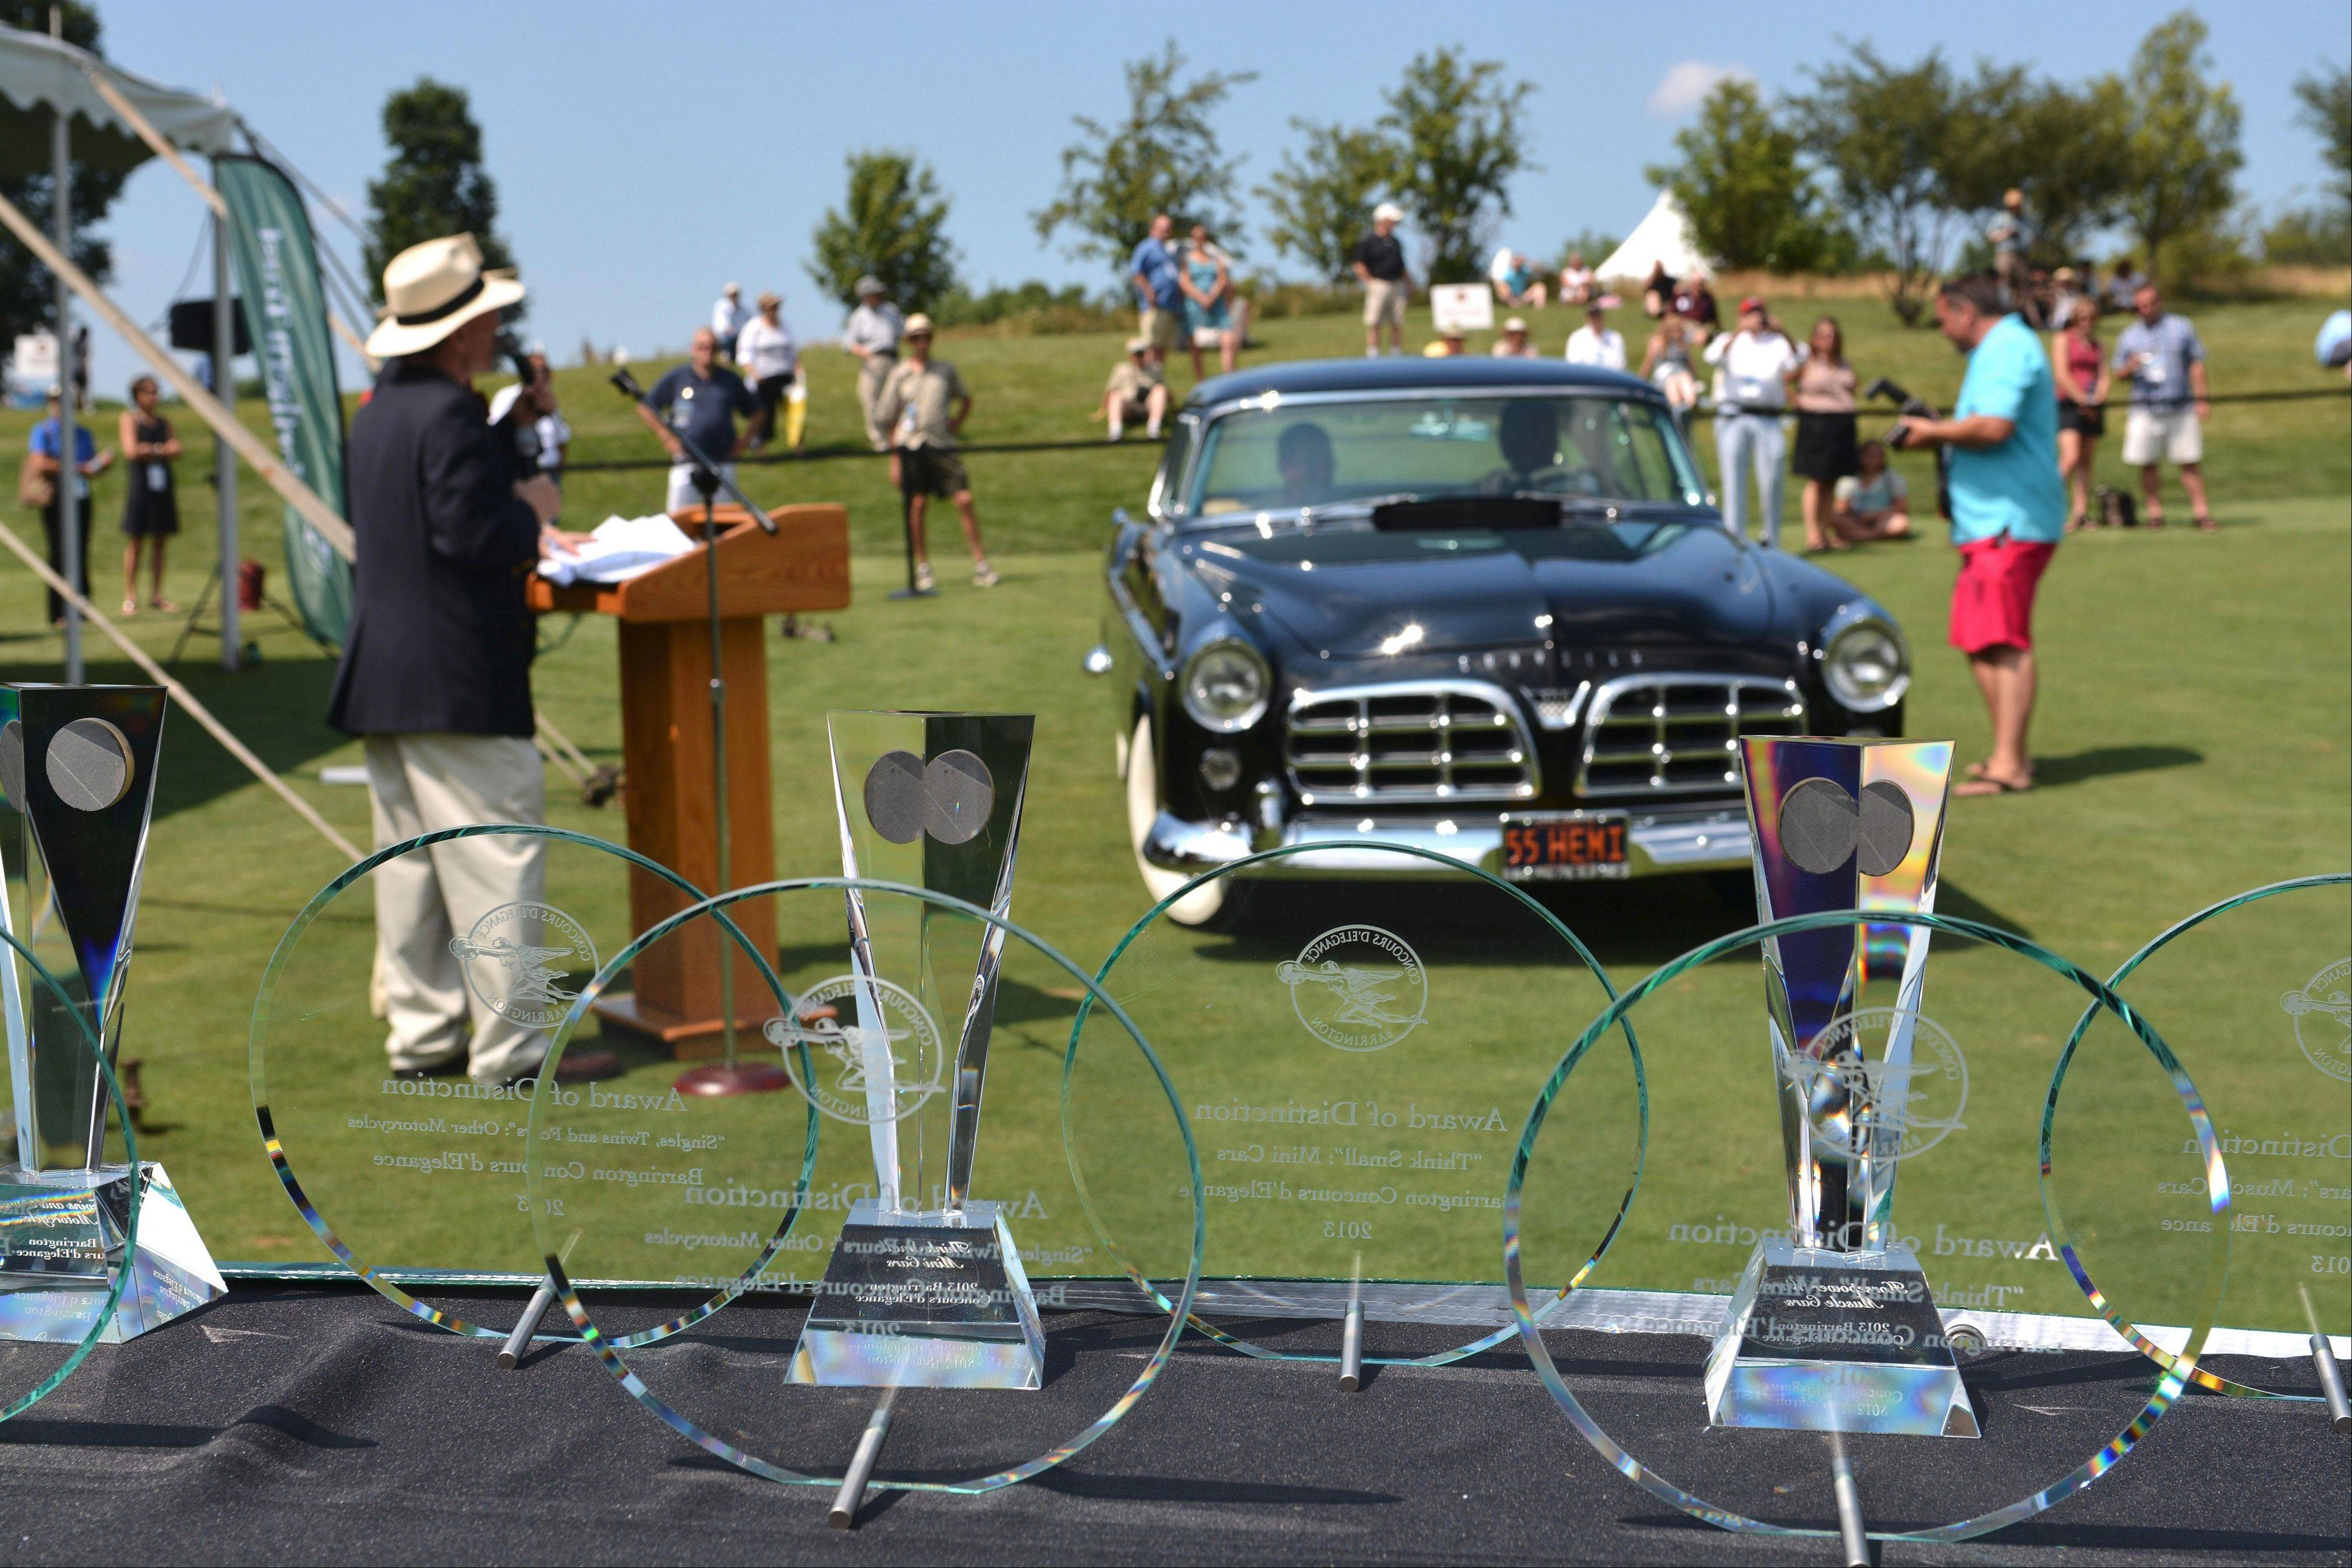 A total of 58 awards were presented at the Concours.